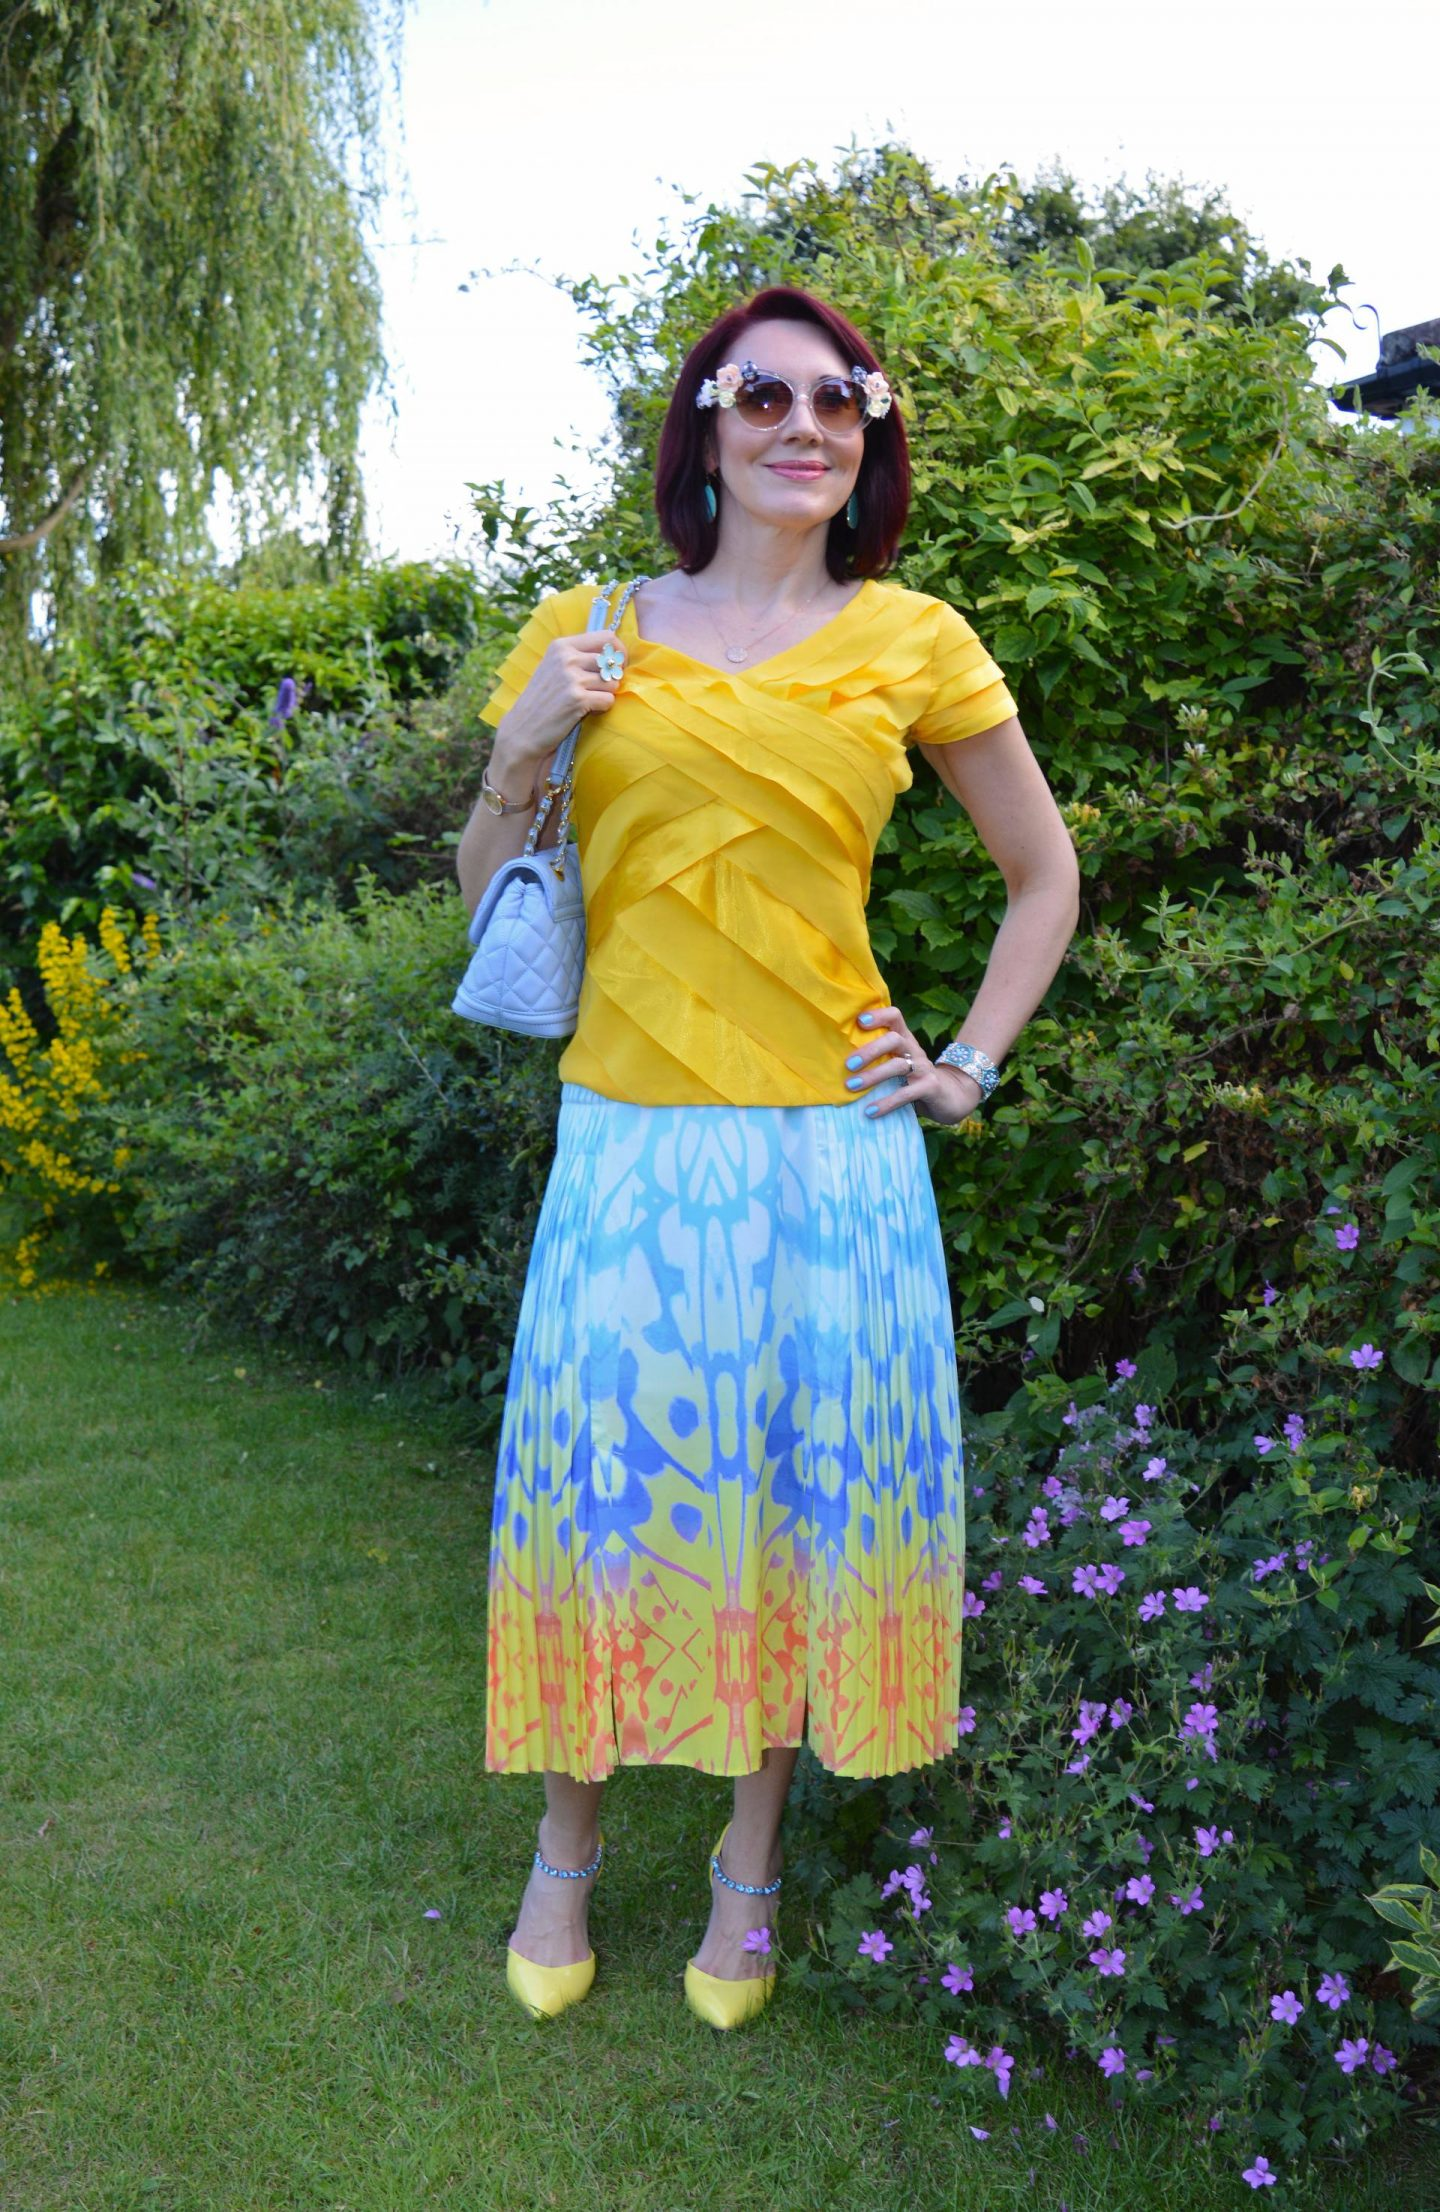 Reiss pleated skirt, Principles by Ben de Lisi yellow top, Love Moschino pale blue bag